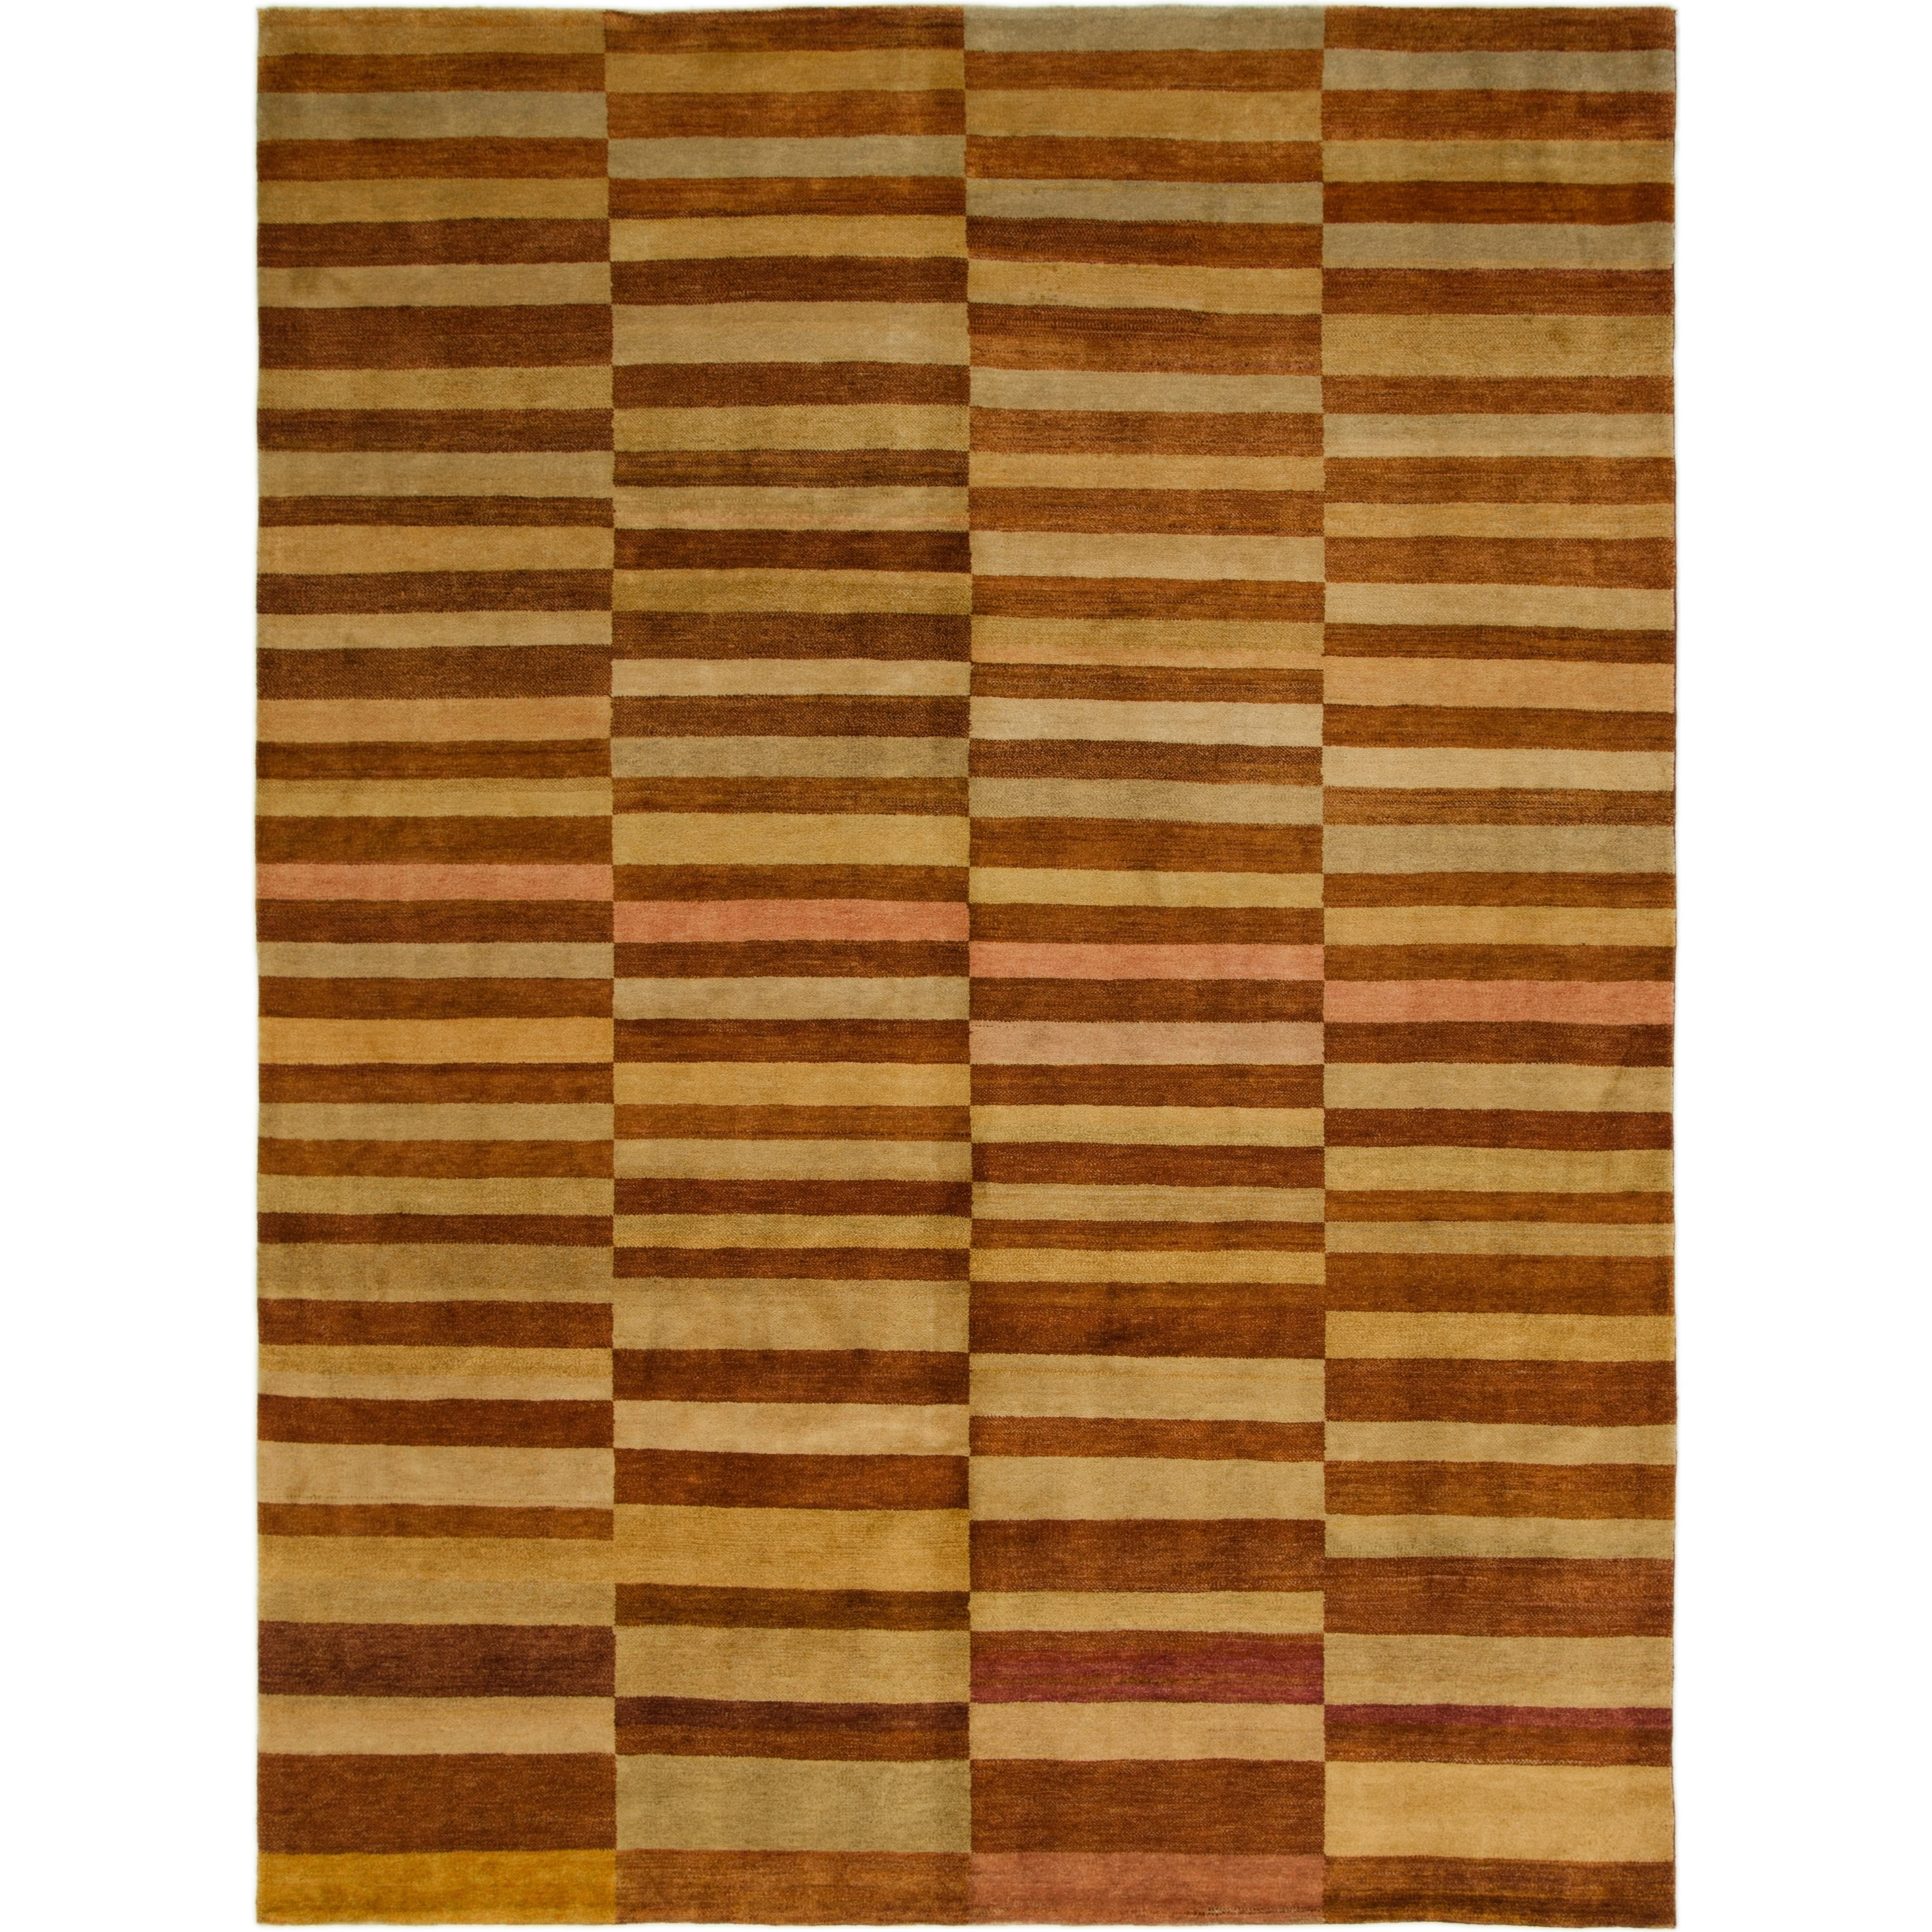 Hand Knotted Kashkuli Gabbeh Wool Area Rug - 8 3 x 11 2 (Rust Red - 8 3 x 11 2)